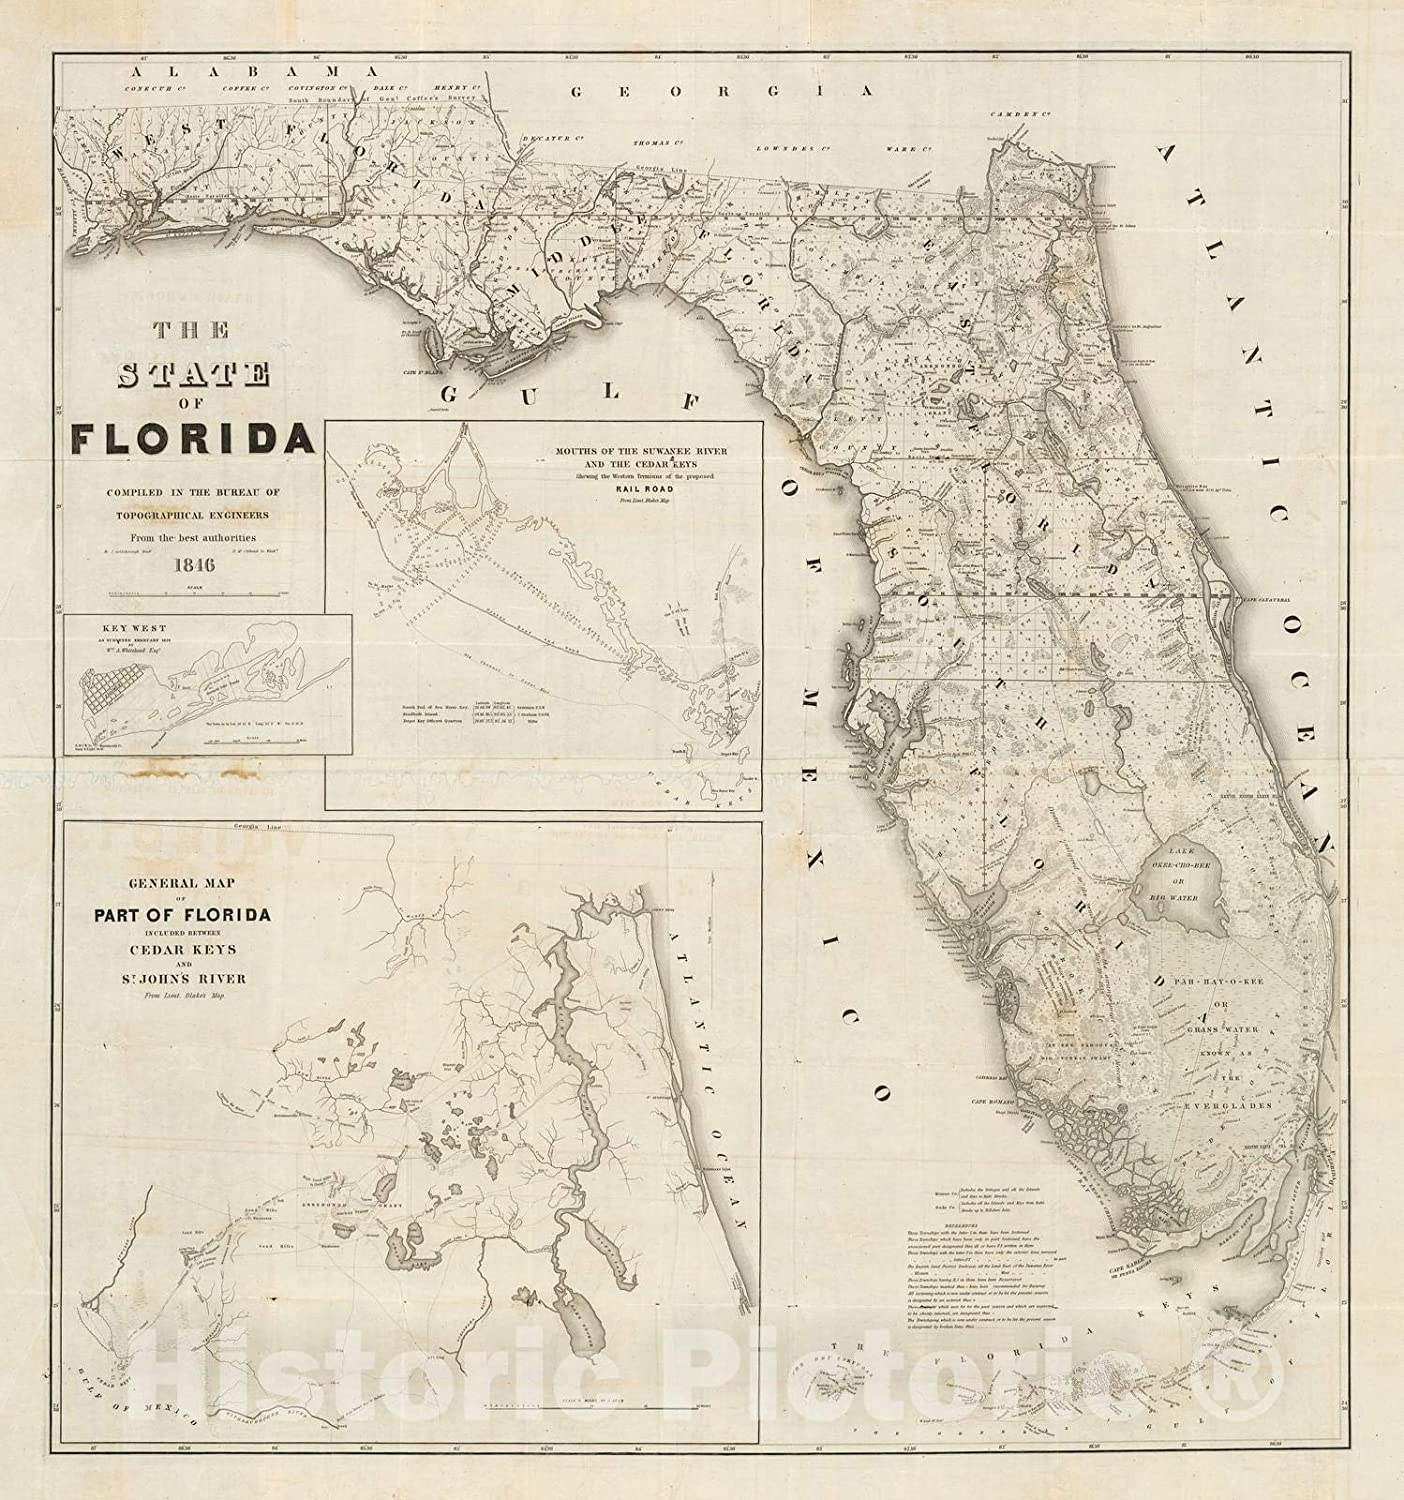 images-na.ssl-images-amazon.com/images/I/814V%2BRf... Including Map Of Western Florida on map of alabama, show map of florida, map of n e florida, map of florida counties, map of florida gulf coast, map of florida panhandle, map of florida and bodies of water, full large map of florida, map of northwestern florida, www.map of florida, map of northern florida, sarasota florida, map of vienna florida, map of west florida beaches, printable detailed map of central florida, map of florida west coast, map of west central florida, map of north florida, map of southwestern florida, map of midwestern florida,